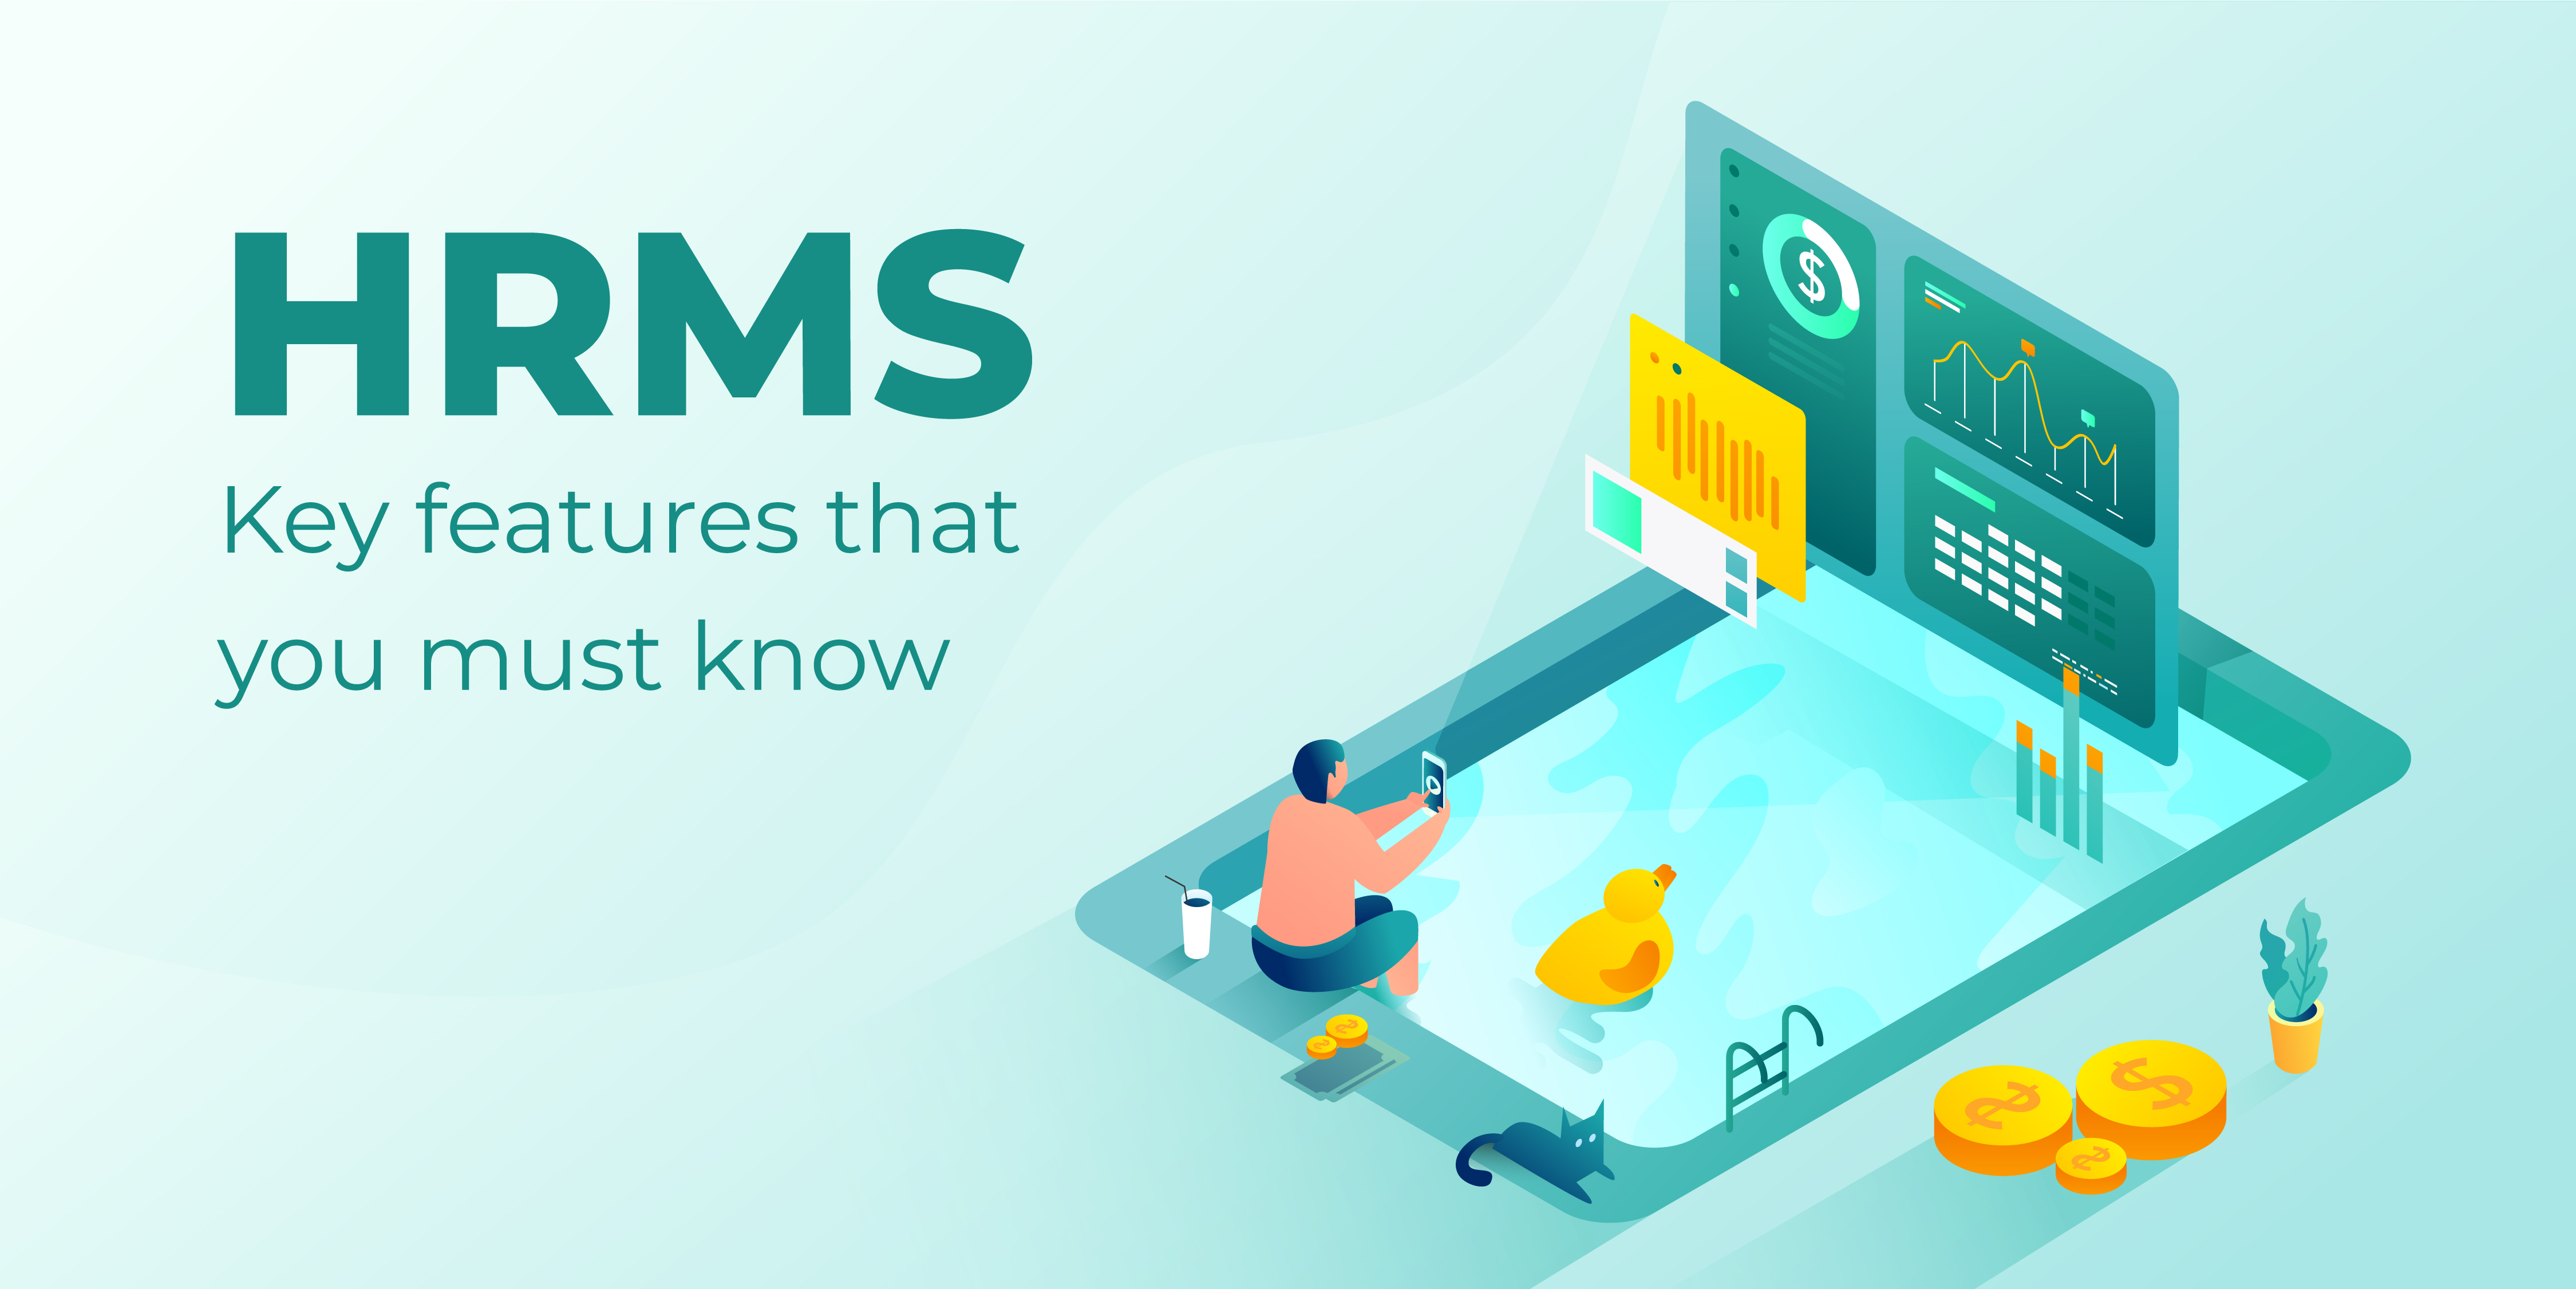 HRMS Key features that you must know